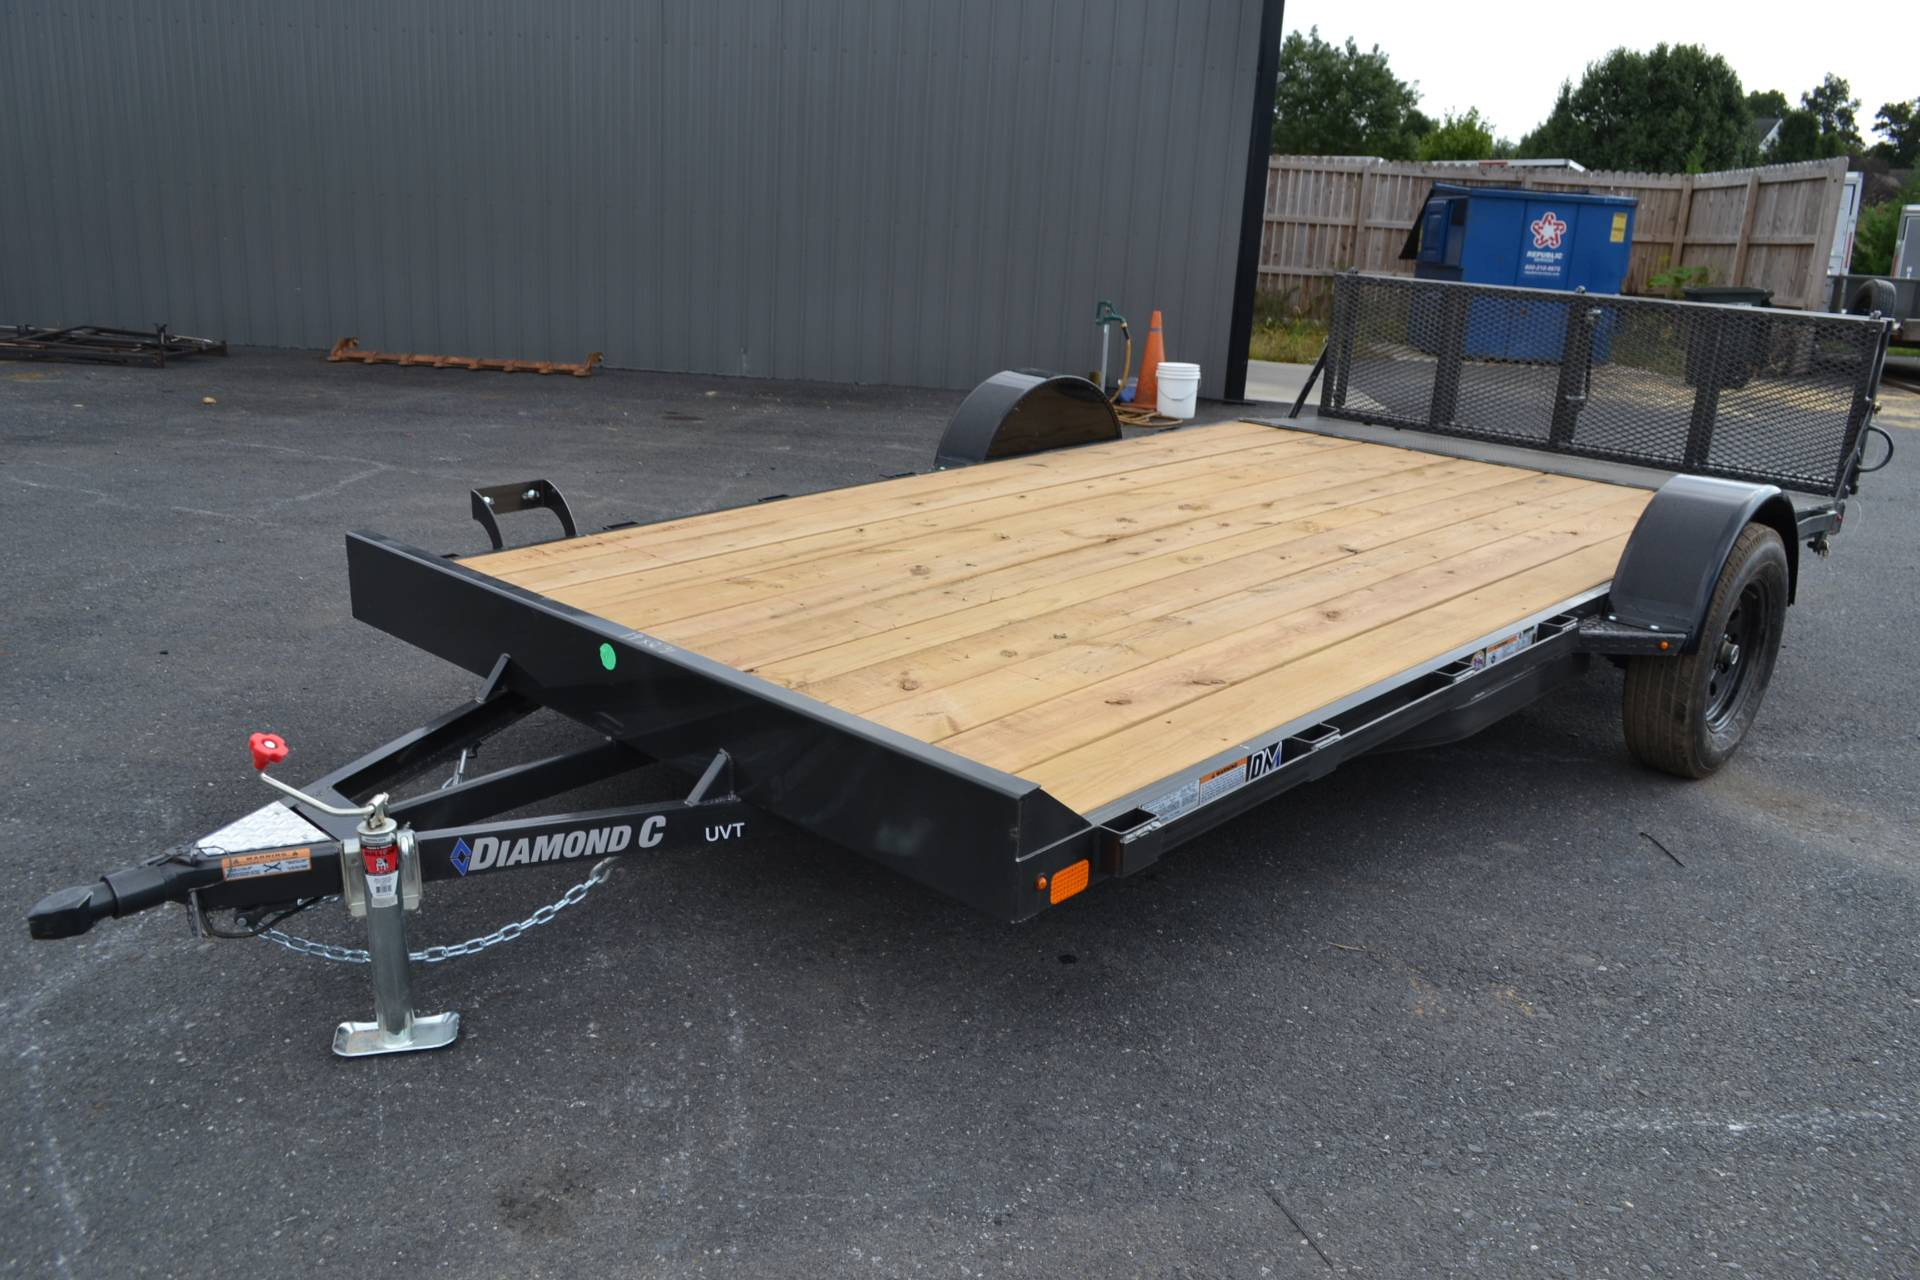 2020 Diamond C 14X83 UVT ATV Trailer 3K in Harrisburg, Pennsylvania - Photo 1